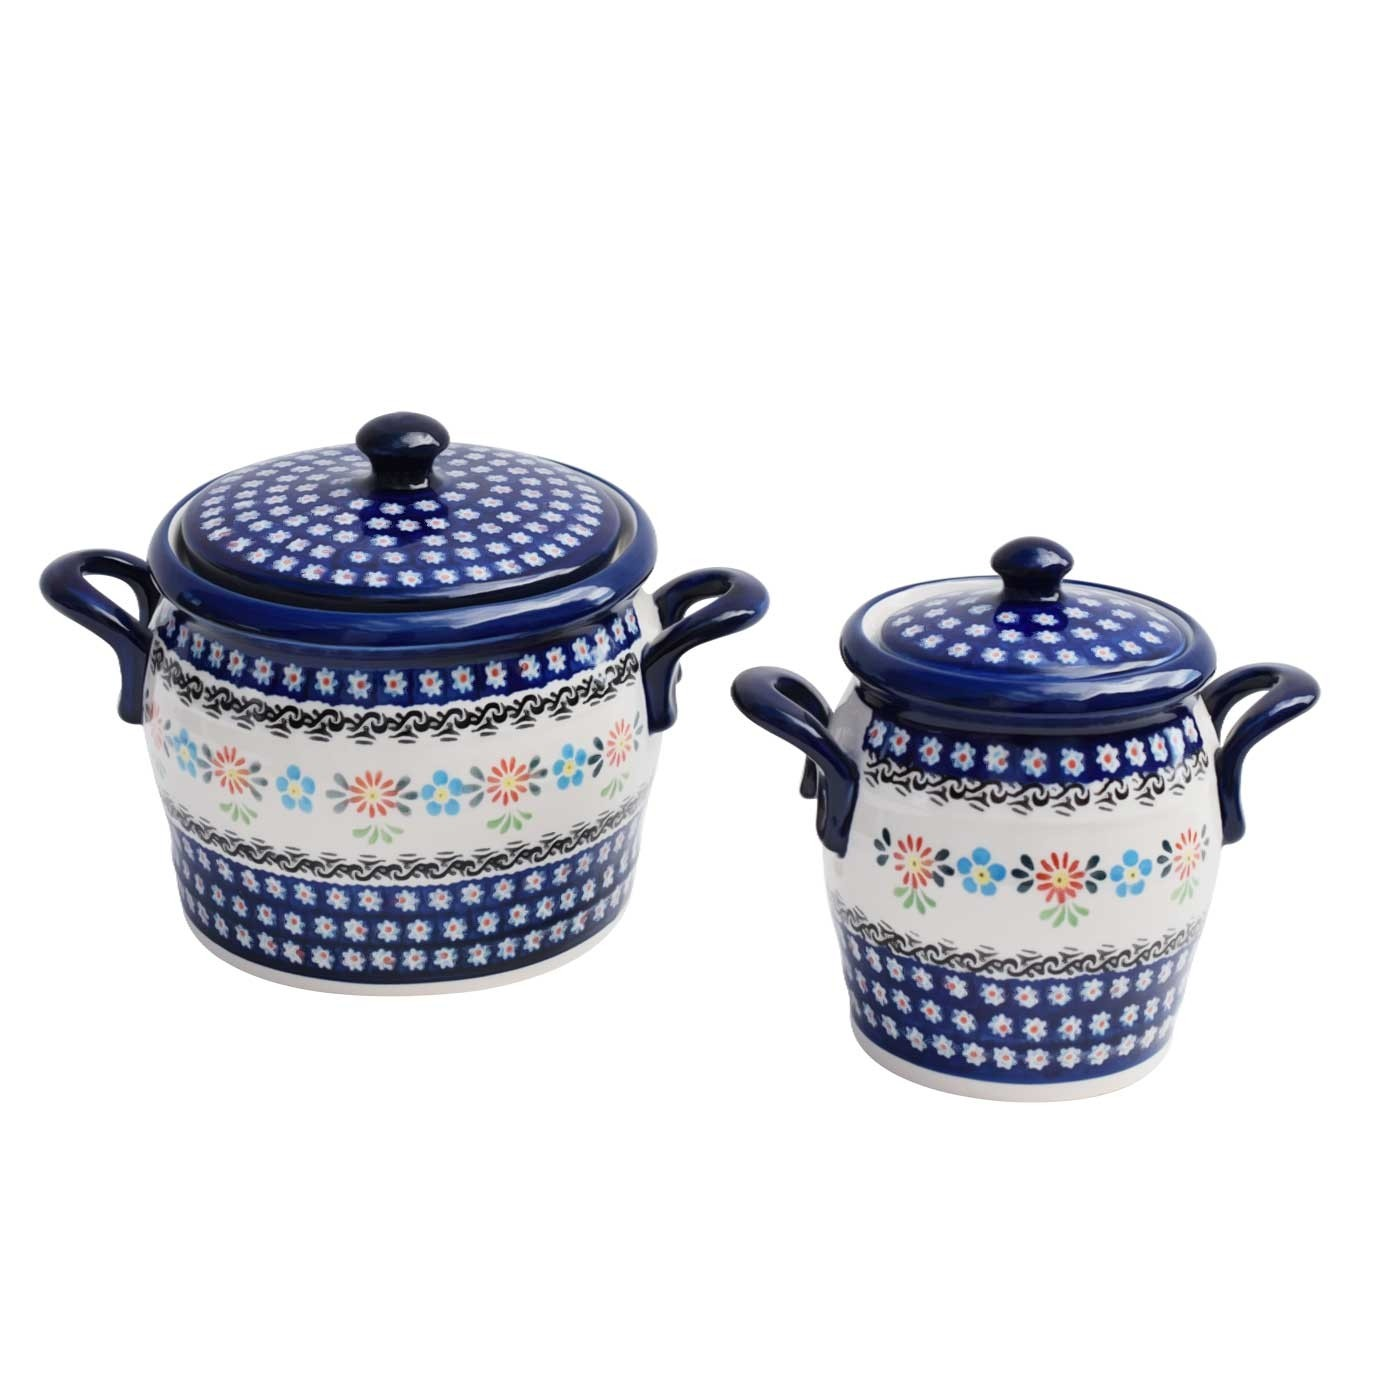 Pottery Avenue Canister Set Heritage Home